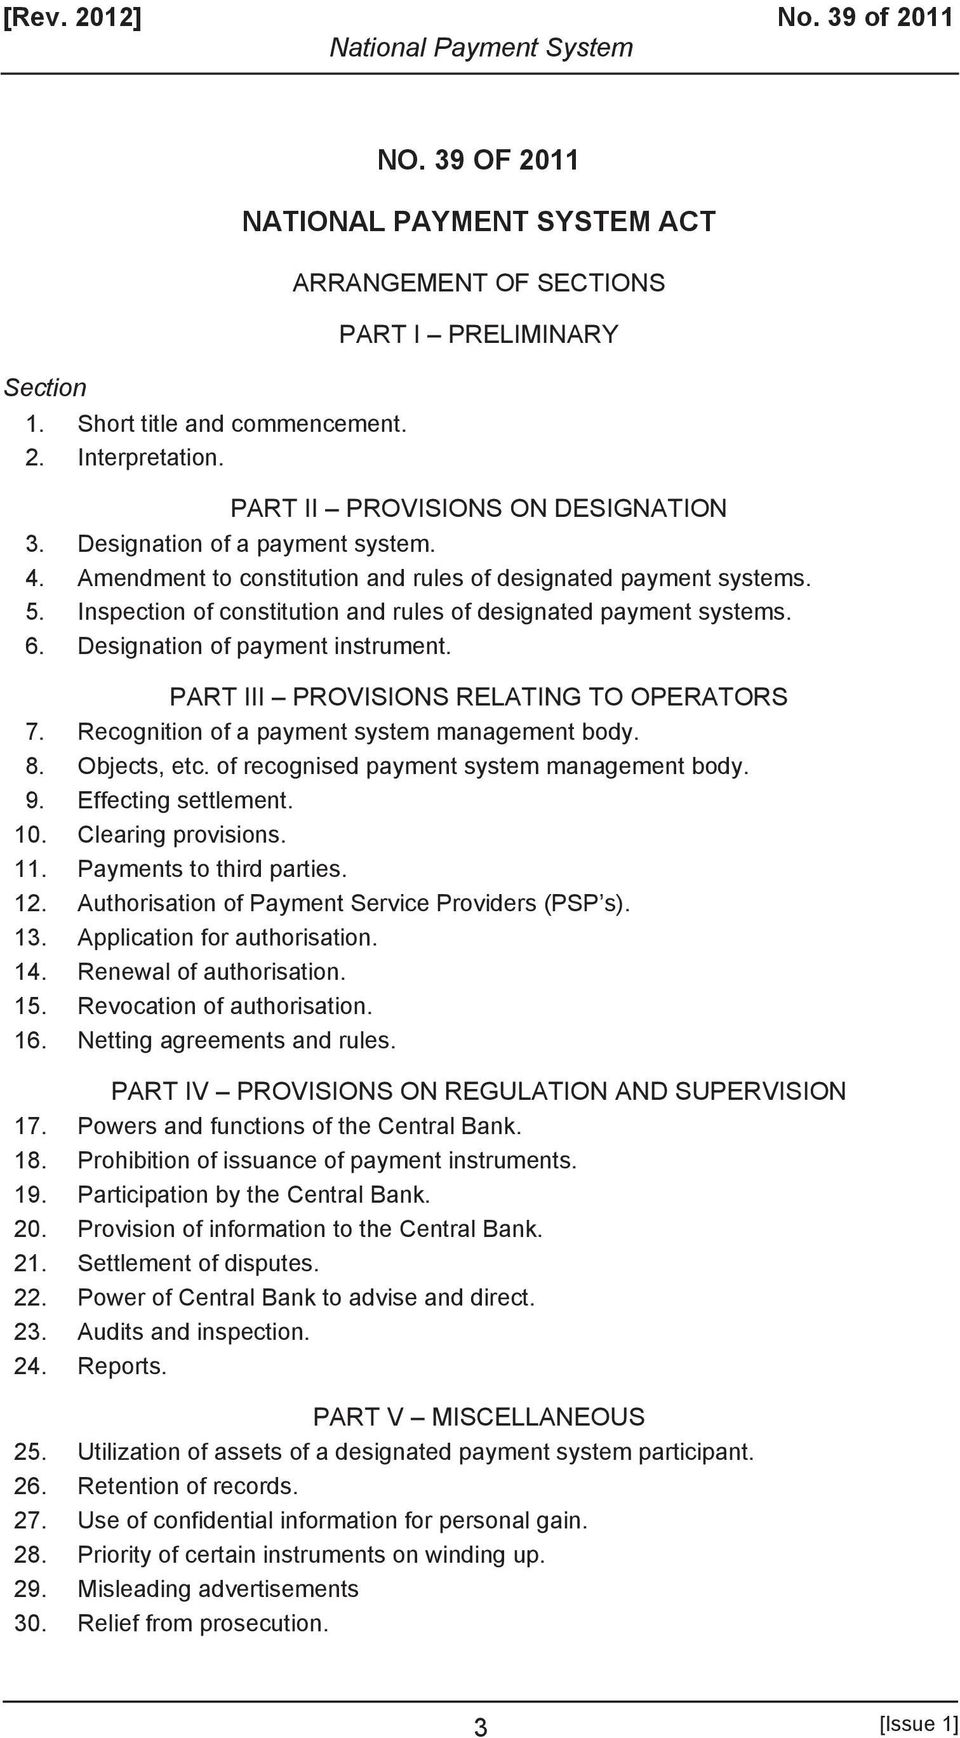 Amendment to constitution and rules of designated payment systems. 5. Inspection of constitution and rules of designated payment systems. 6. Designation of payment instrument.